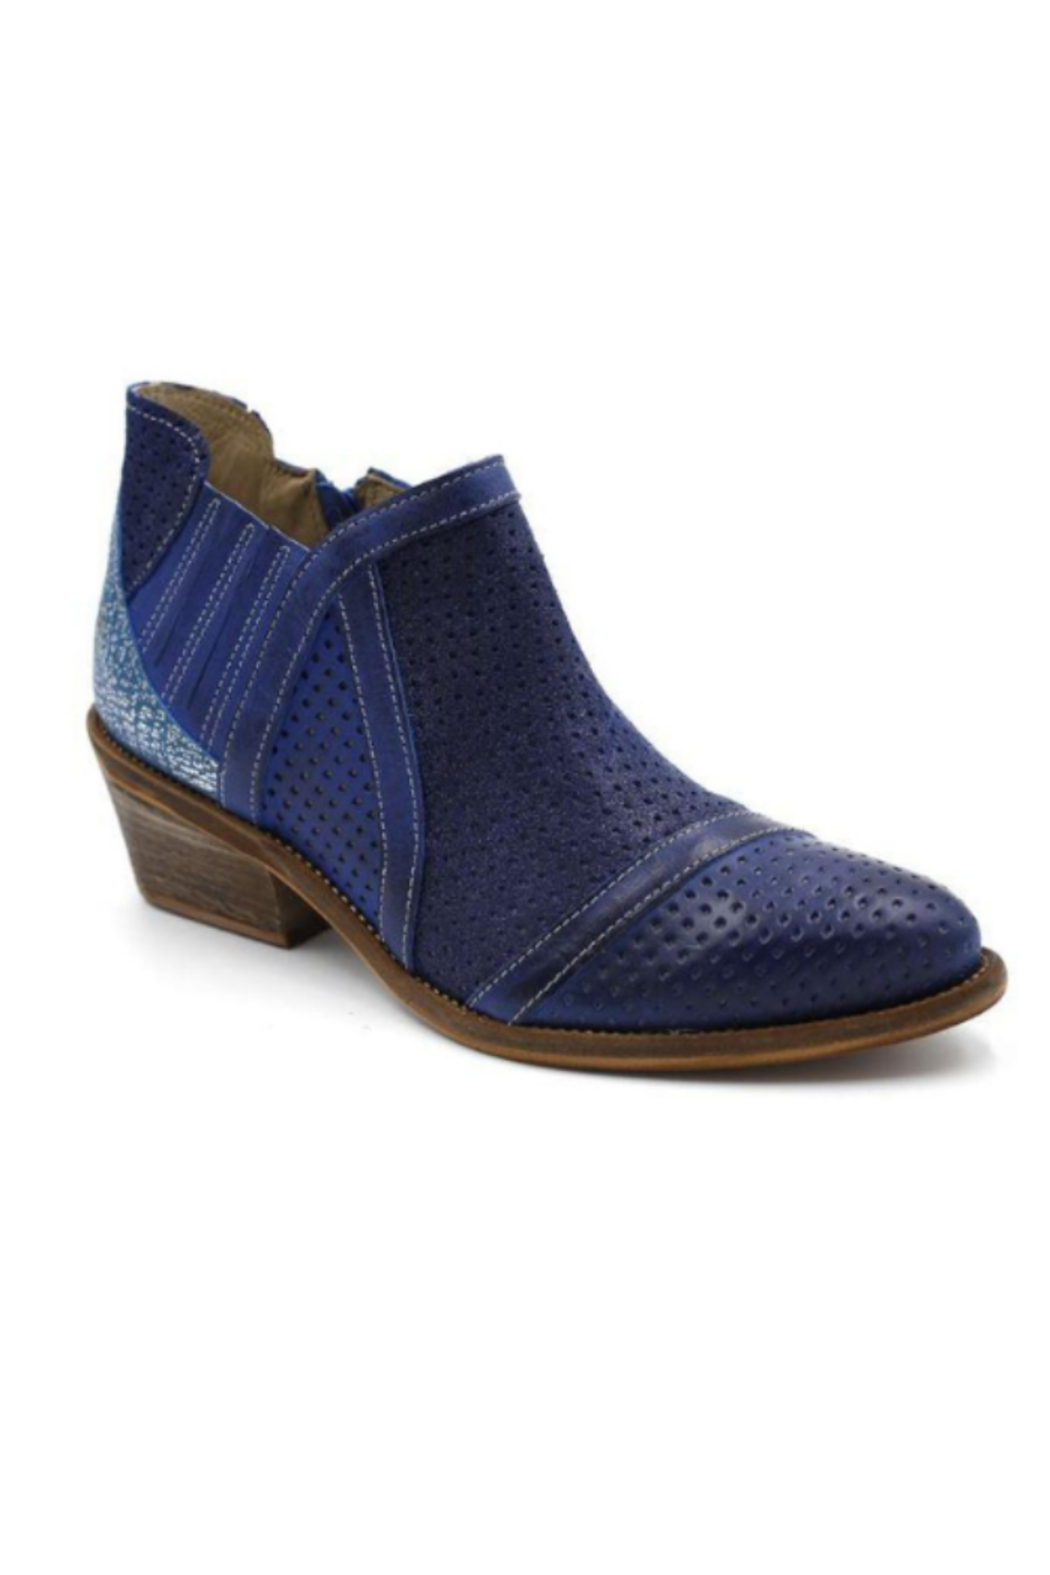 Casta Low Ankle Boot with 3-tone Blue Leather - Main Image